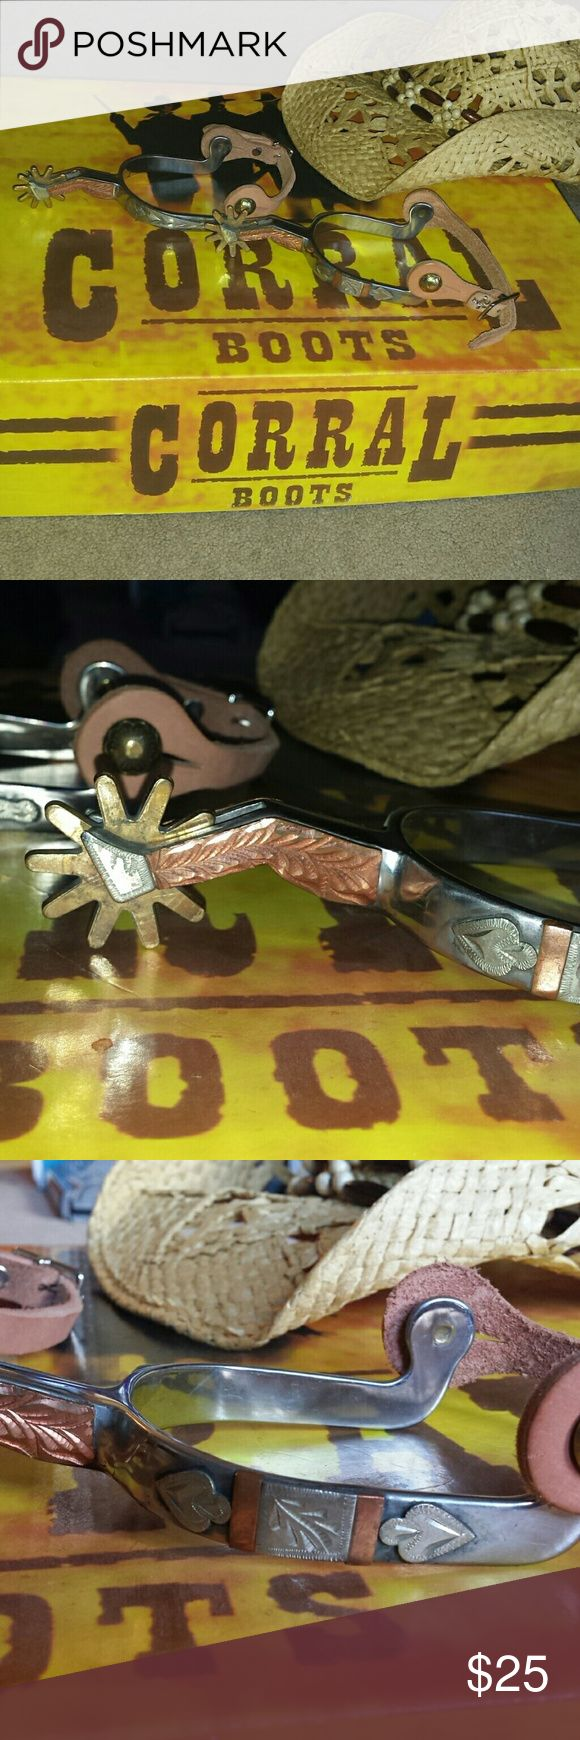 Cowboy boot spurs Western wear. Colorado Saddlery New never worn. Adjustable boot spurs for horseback riding. Western wear. The Yuma lady leg by the Colorado Saddlery Company. Colorado Saddlery Company Shoes